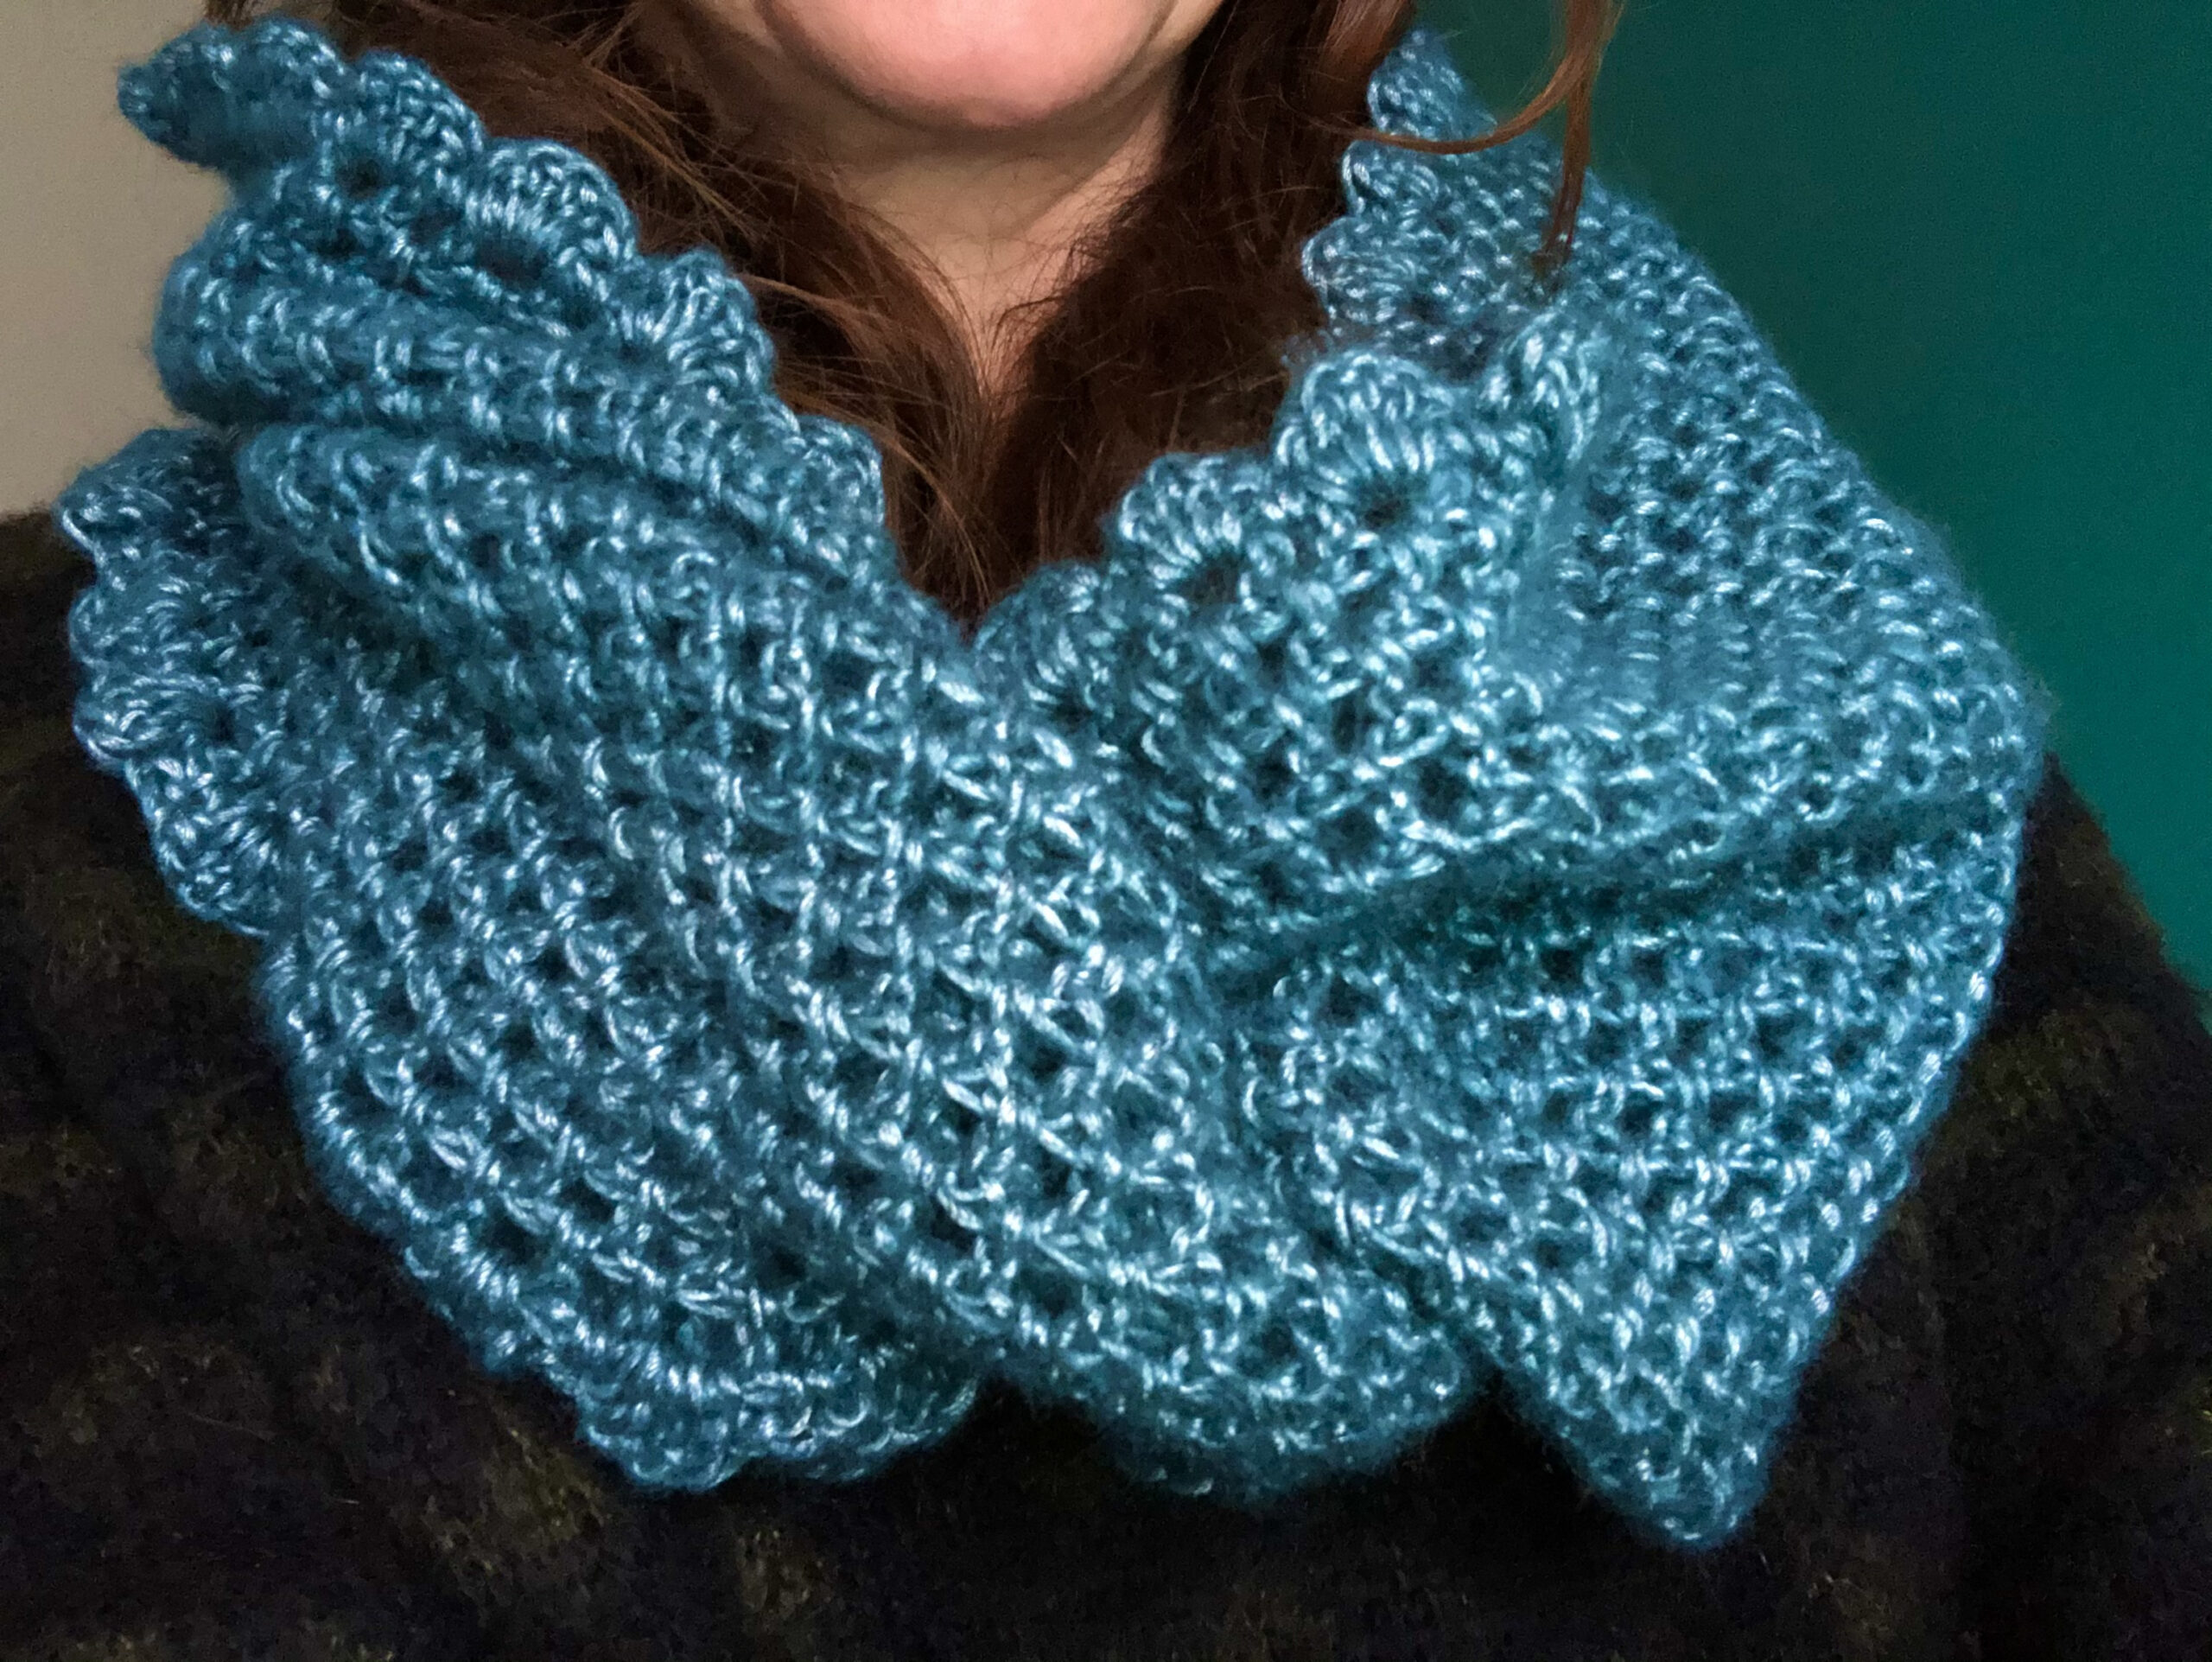 Teal hand crocheted infinity scarf.